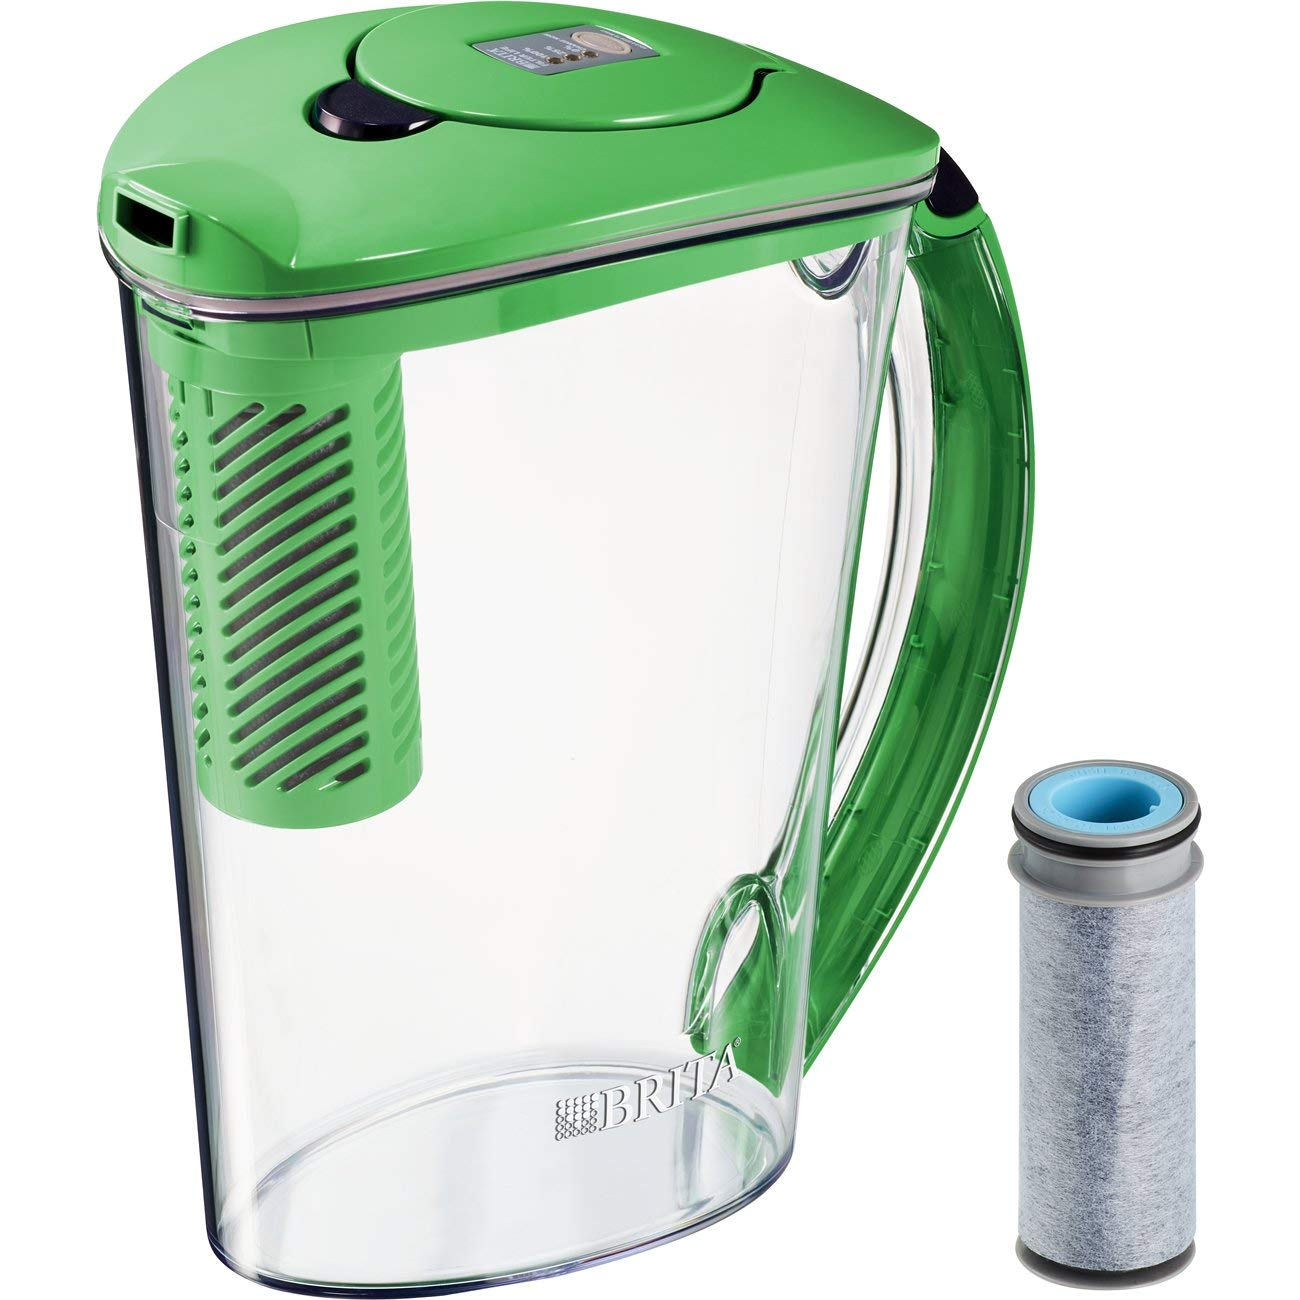 Brita Pitchers 36322 Stream Filter-As-You-Pour Rapids Water Pitcher, 10 cup, Island Green